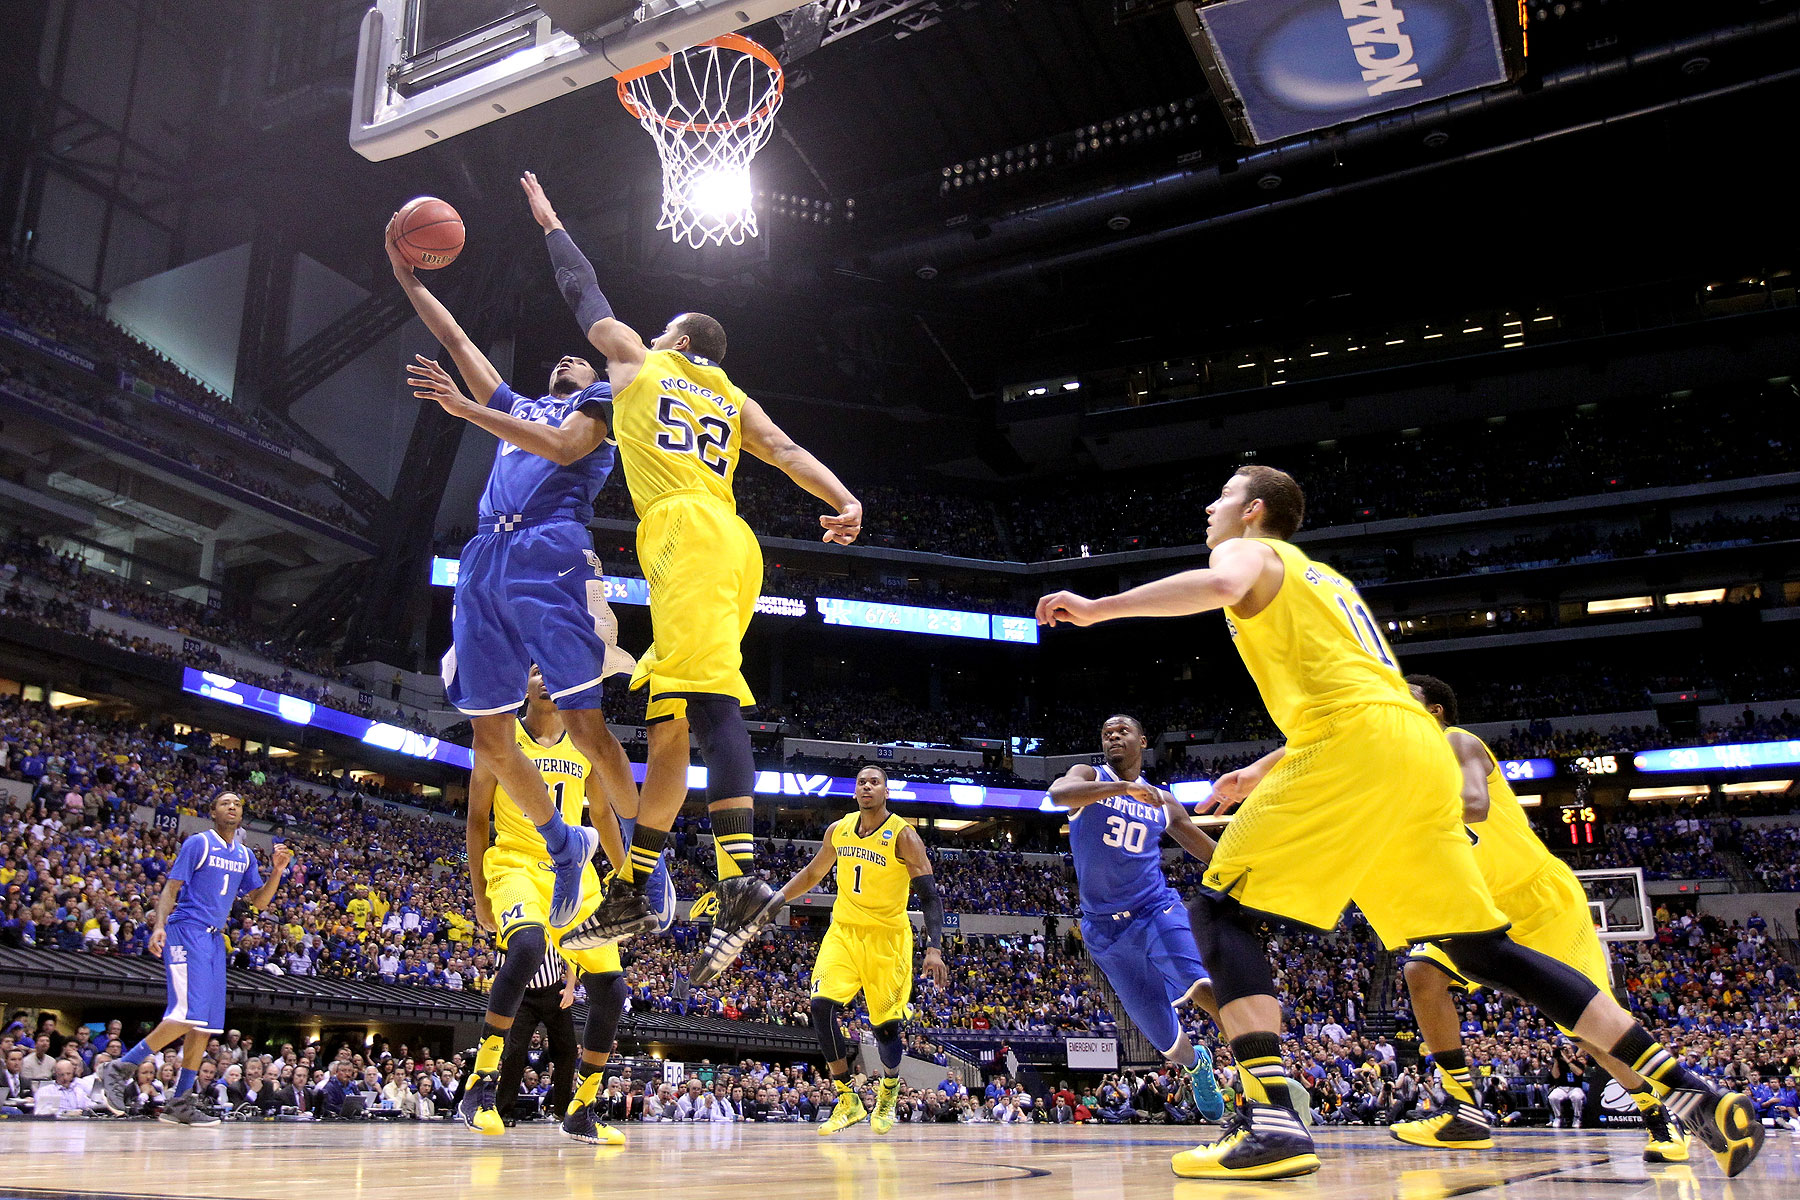 Marcus Lee of the Kentucky Wildcats shoots the ball against the Michigan Wolverines during the midwest regional final of the 2014 NCAA Men's Basketball Tournament at Lucas Oil Stadium on March 30, 2014 in Indianapolis, Indiana